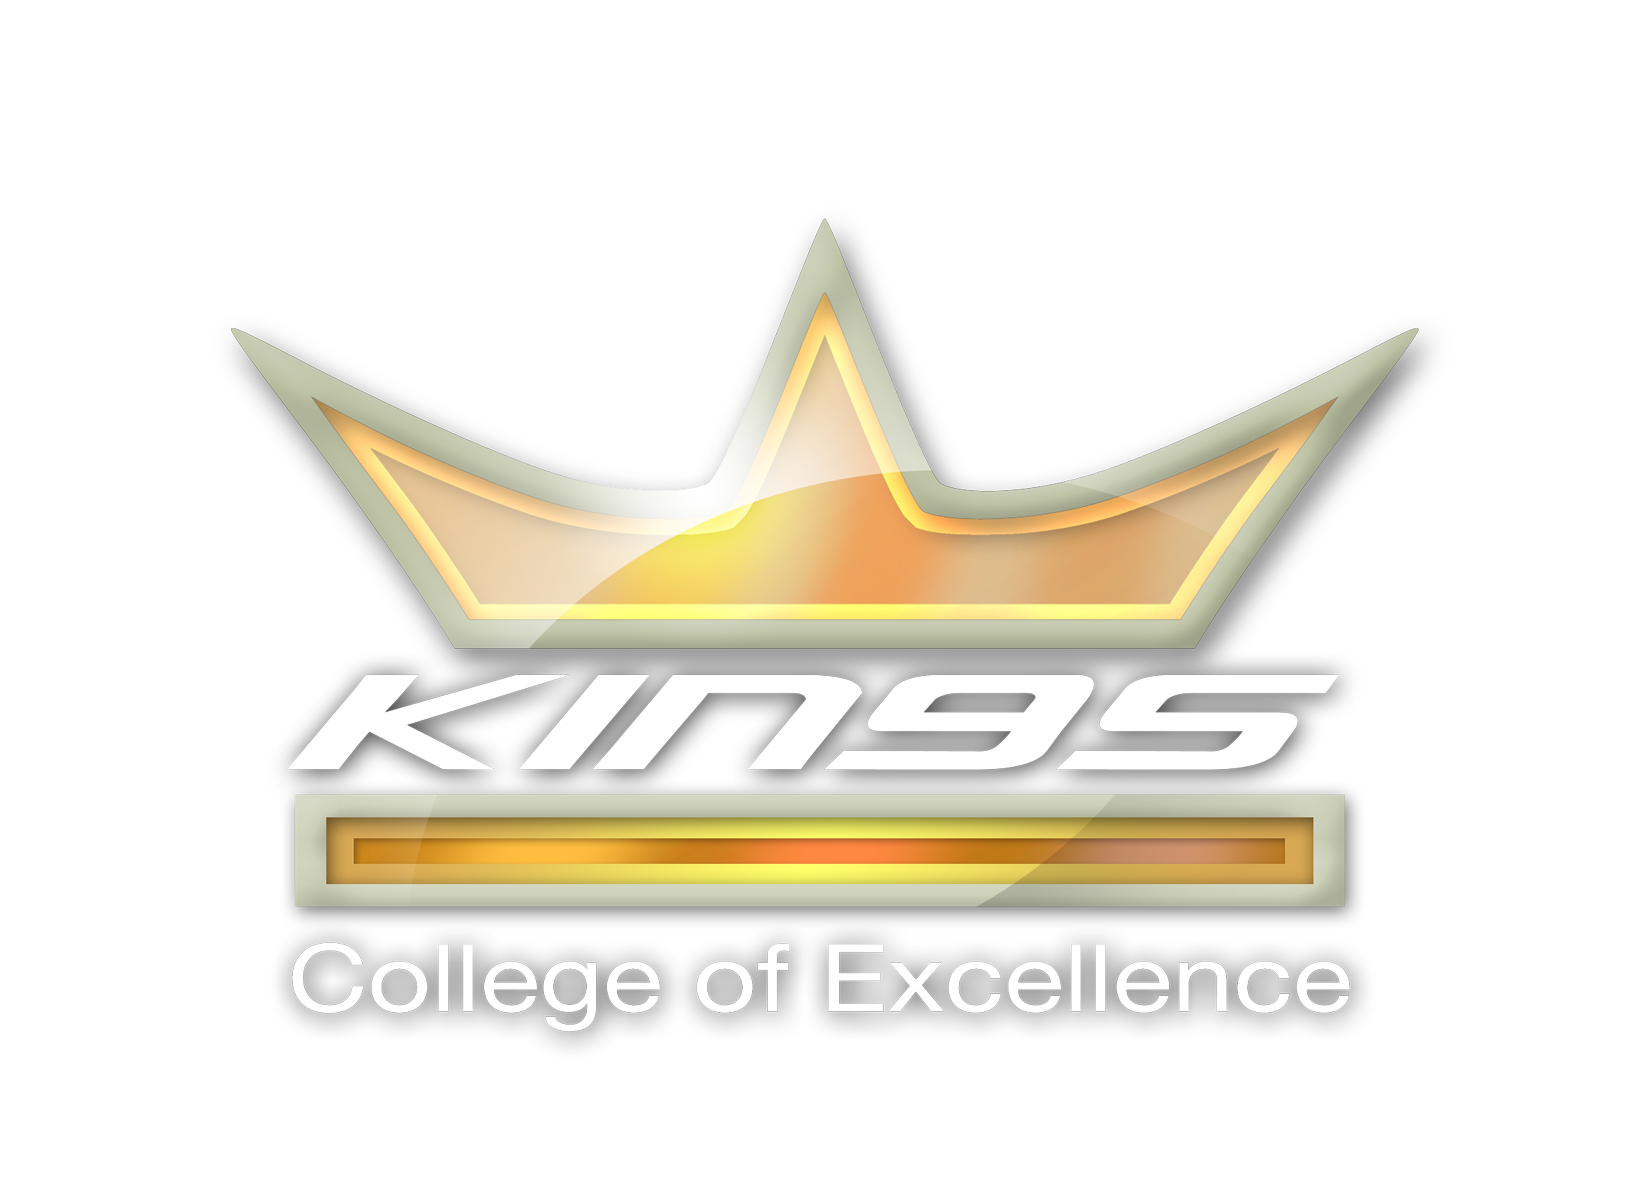 Kings College of Excellence